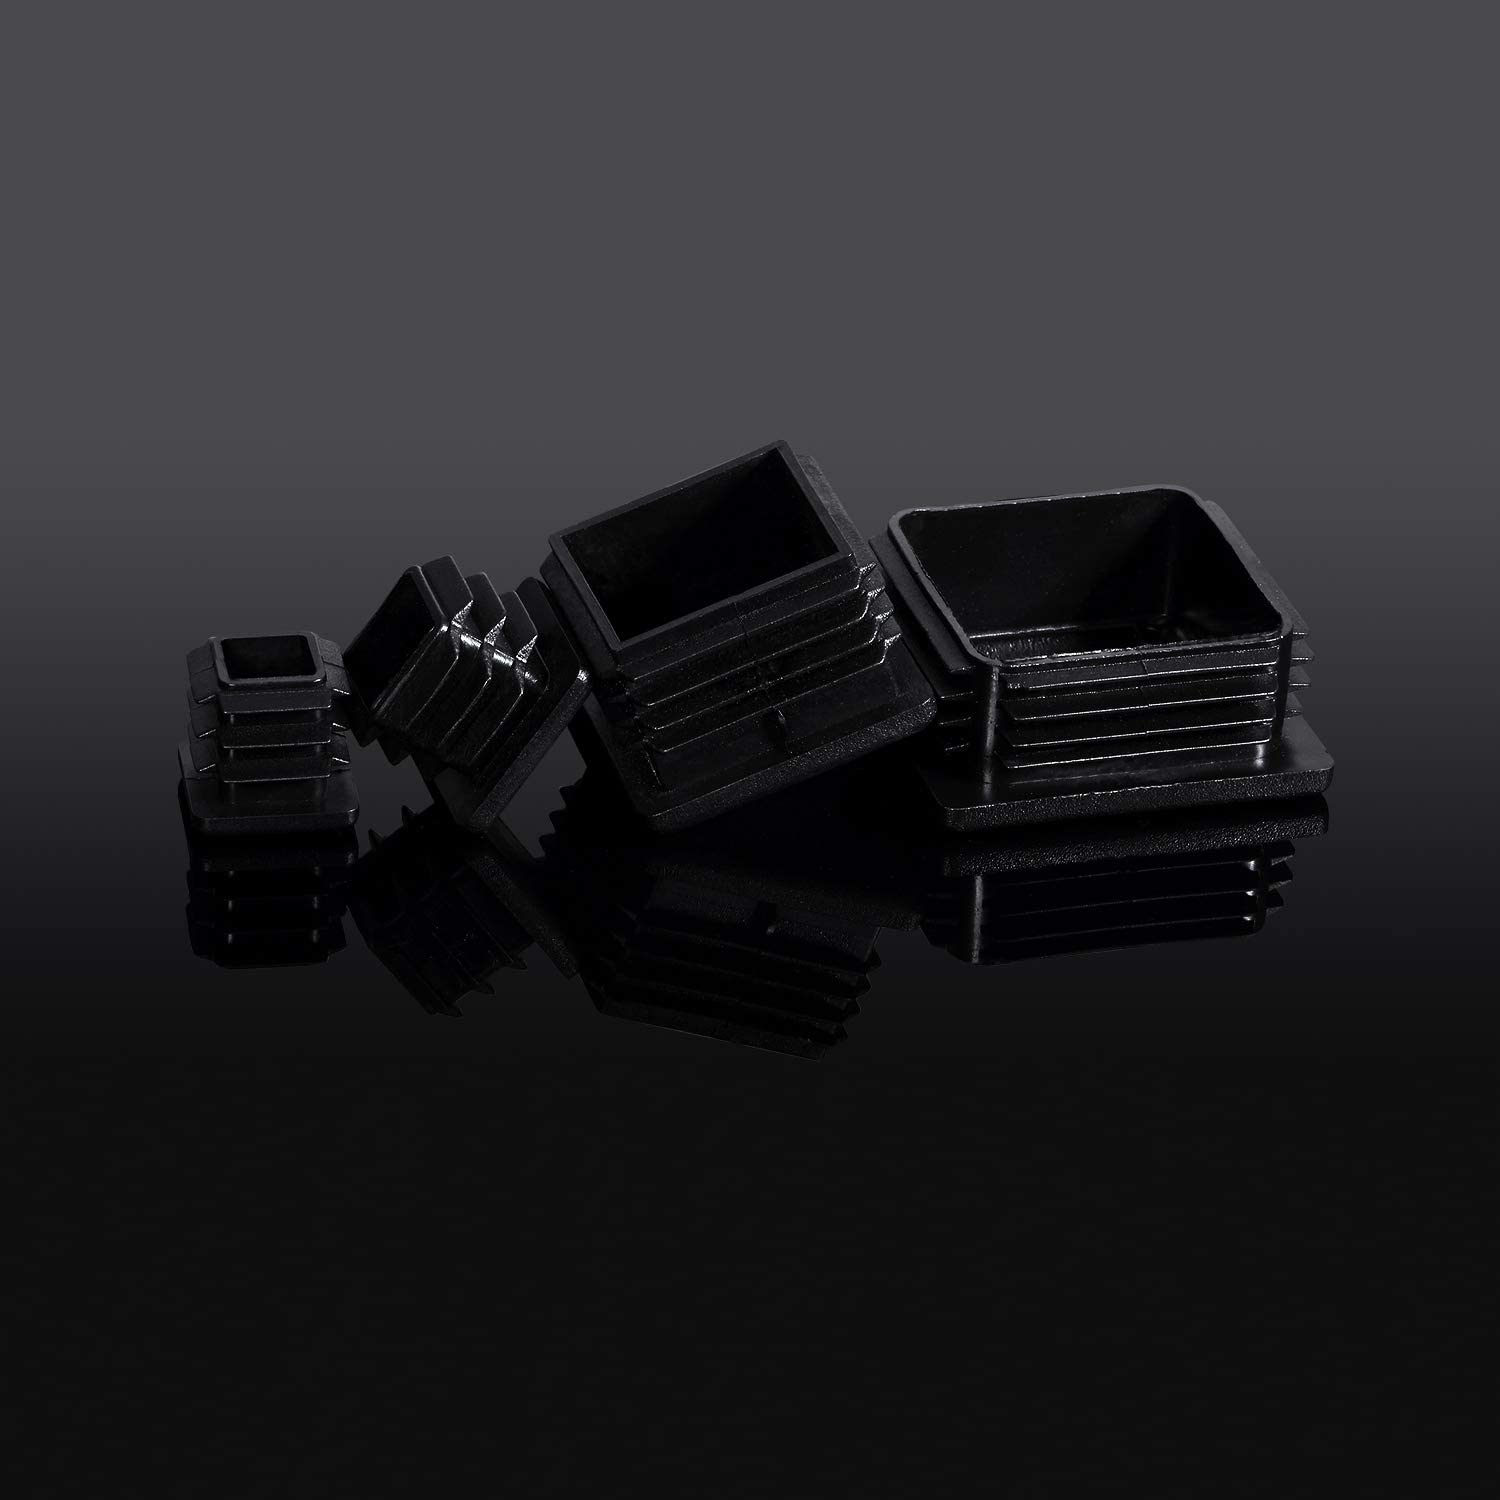 4, 50 mm// 2 Inch Square Plastic Plugs Tubing End Caps Black Plastic Square Plugs Tubing Post End Cap for Square Tubing Chair Glide Inserts